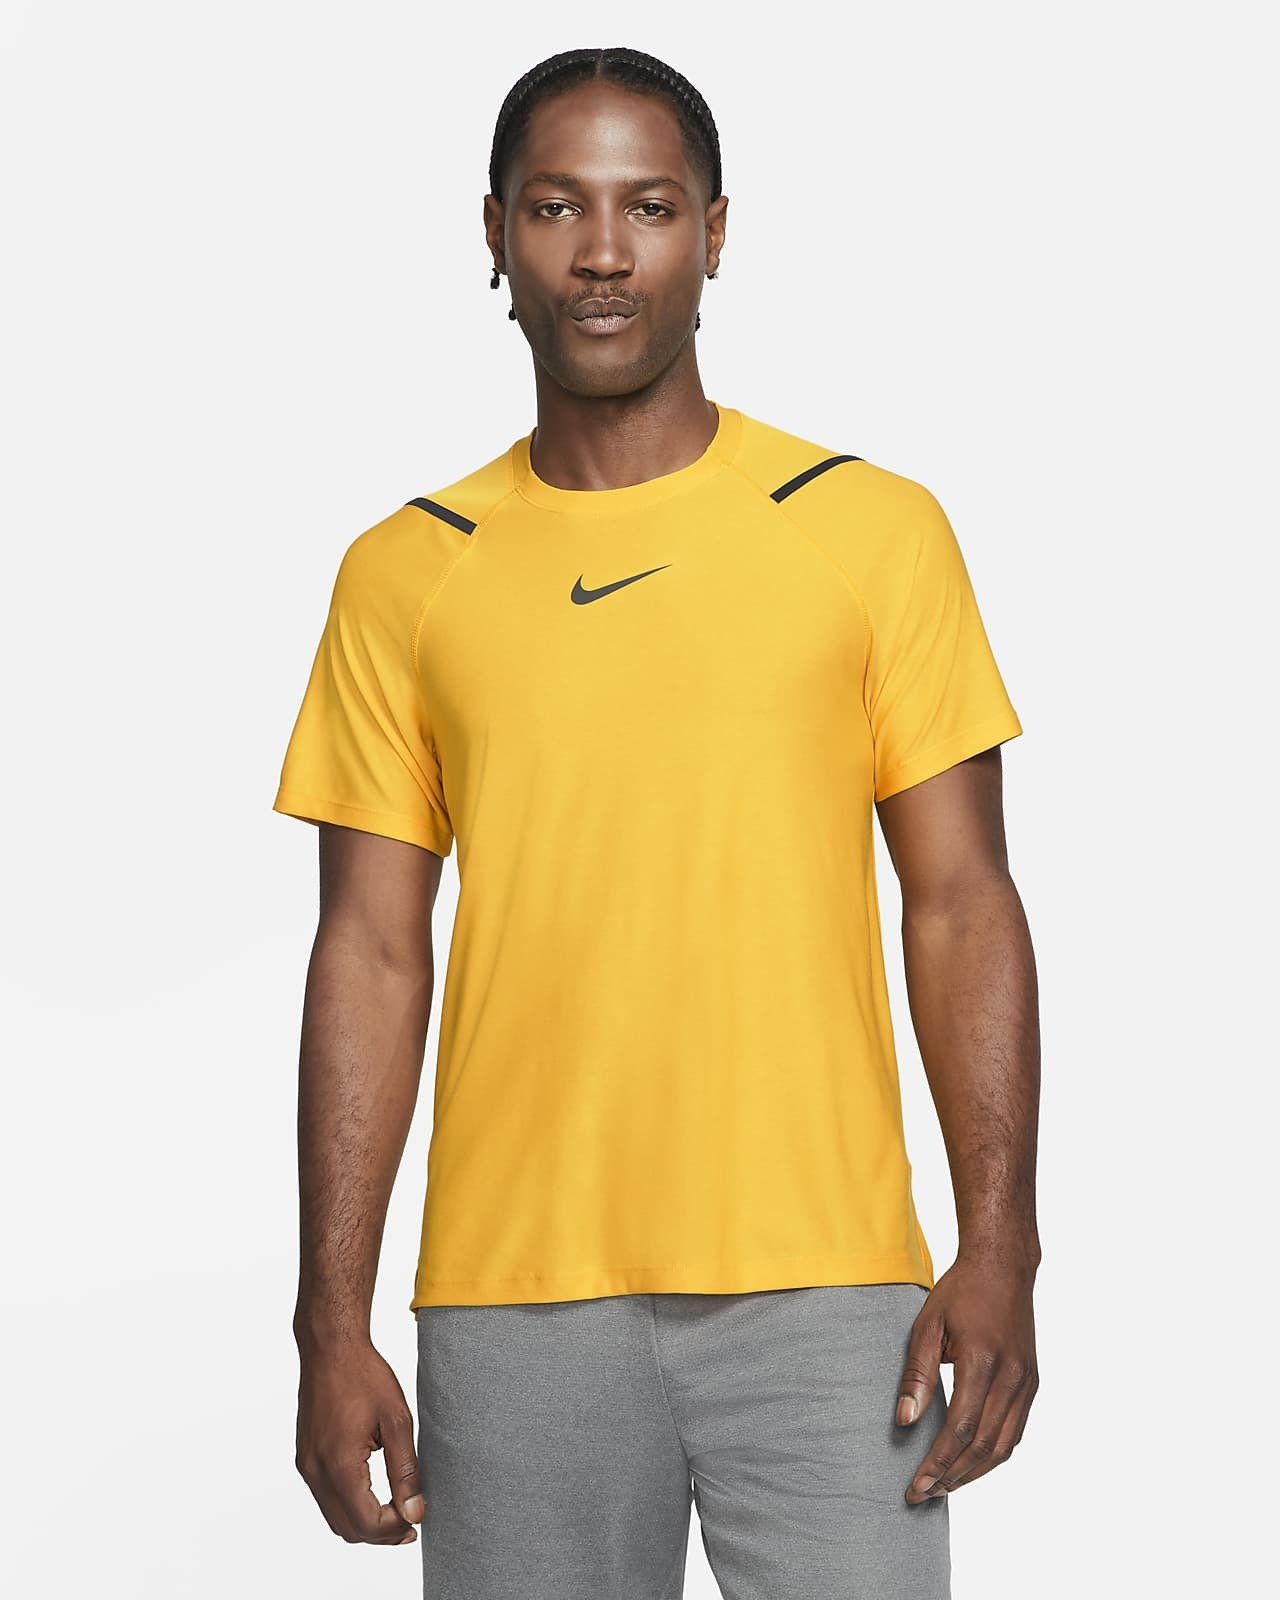 pro-mens-short-sleeve-top-FPxqmD[1]